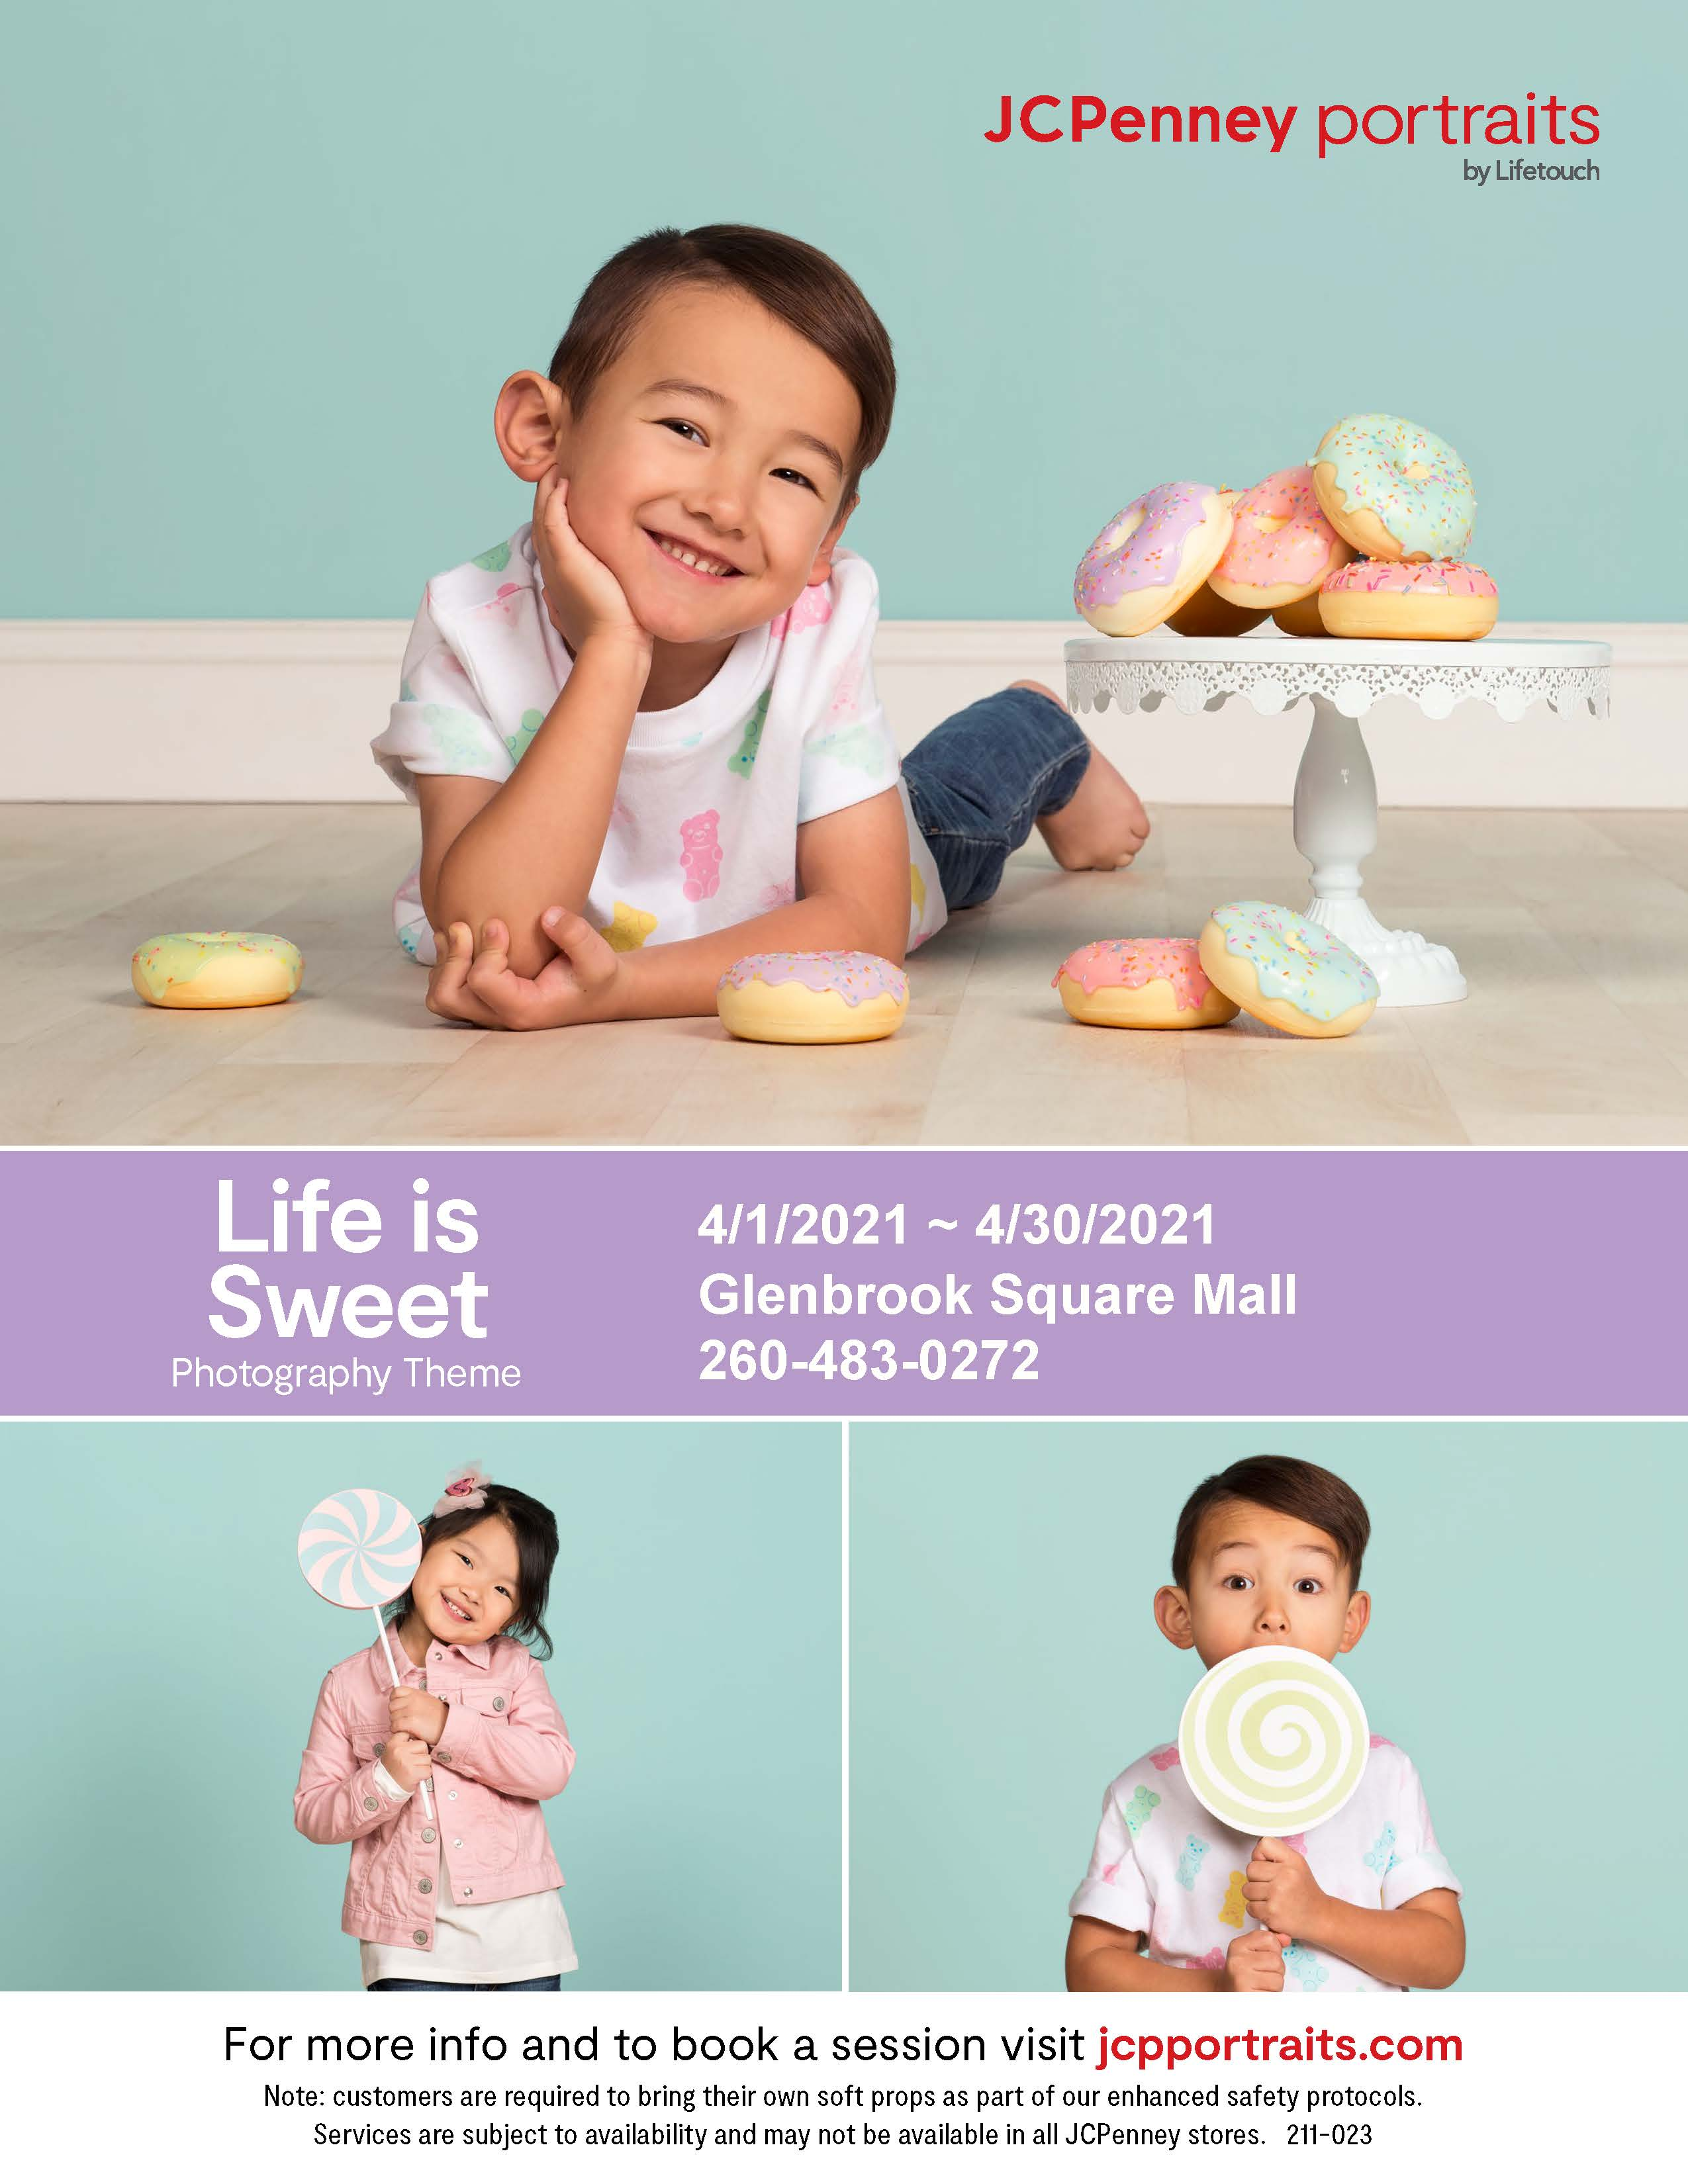 Life Is Sweet Event from JCPenney